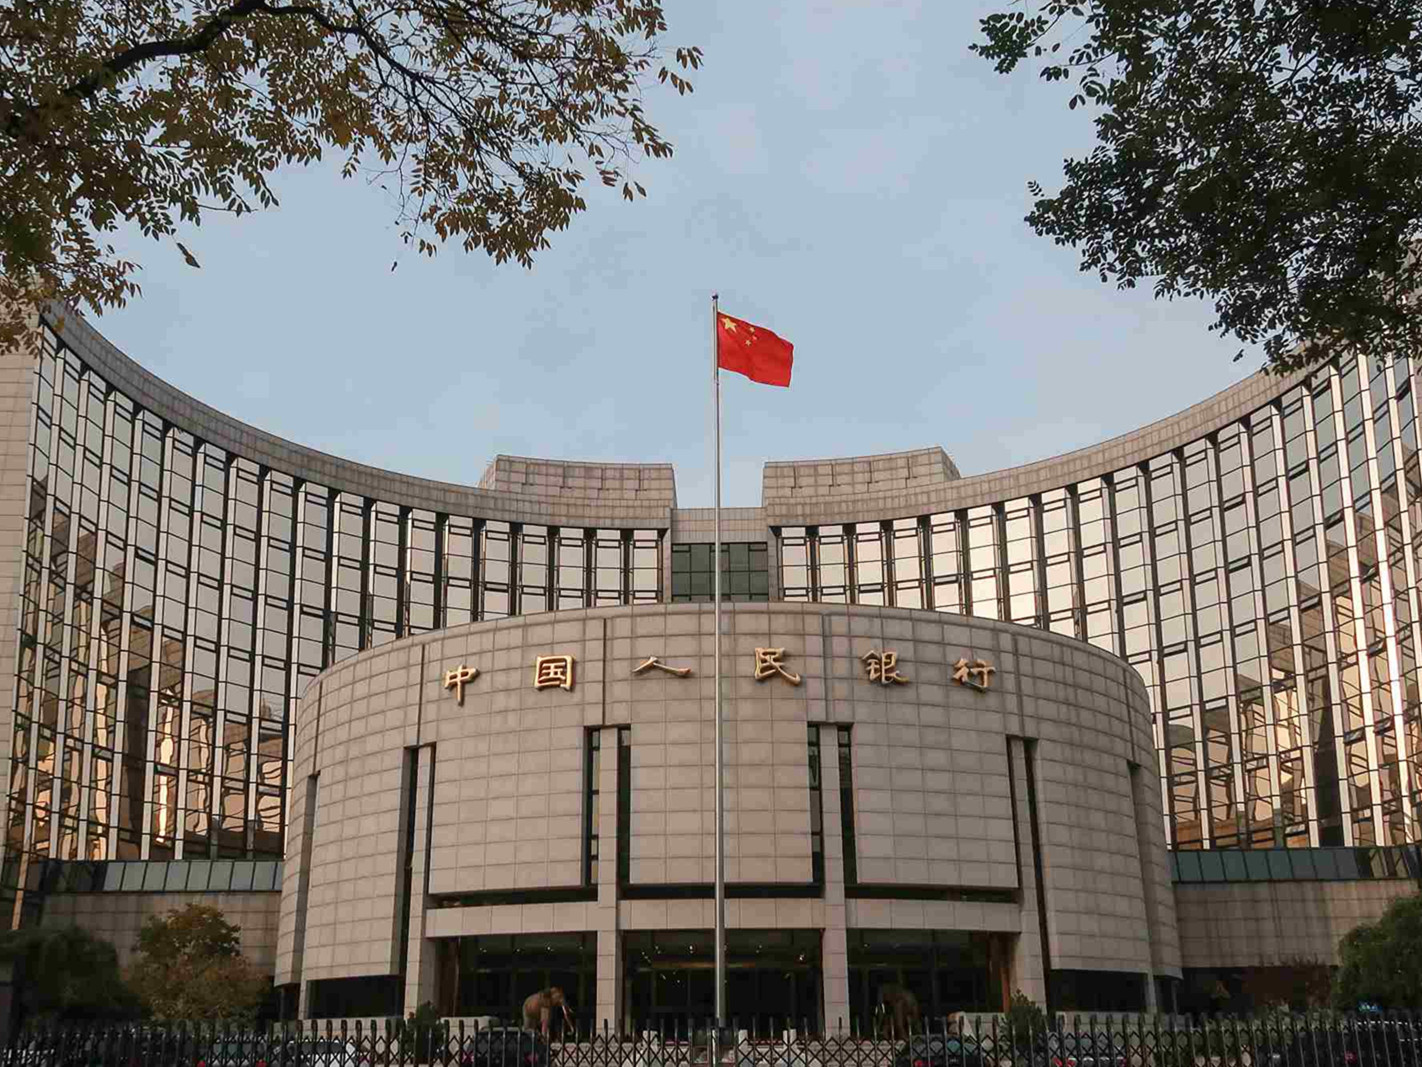 China's forex reserves rise for second month in row